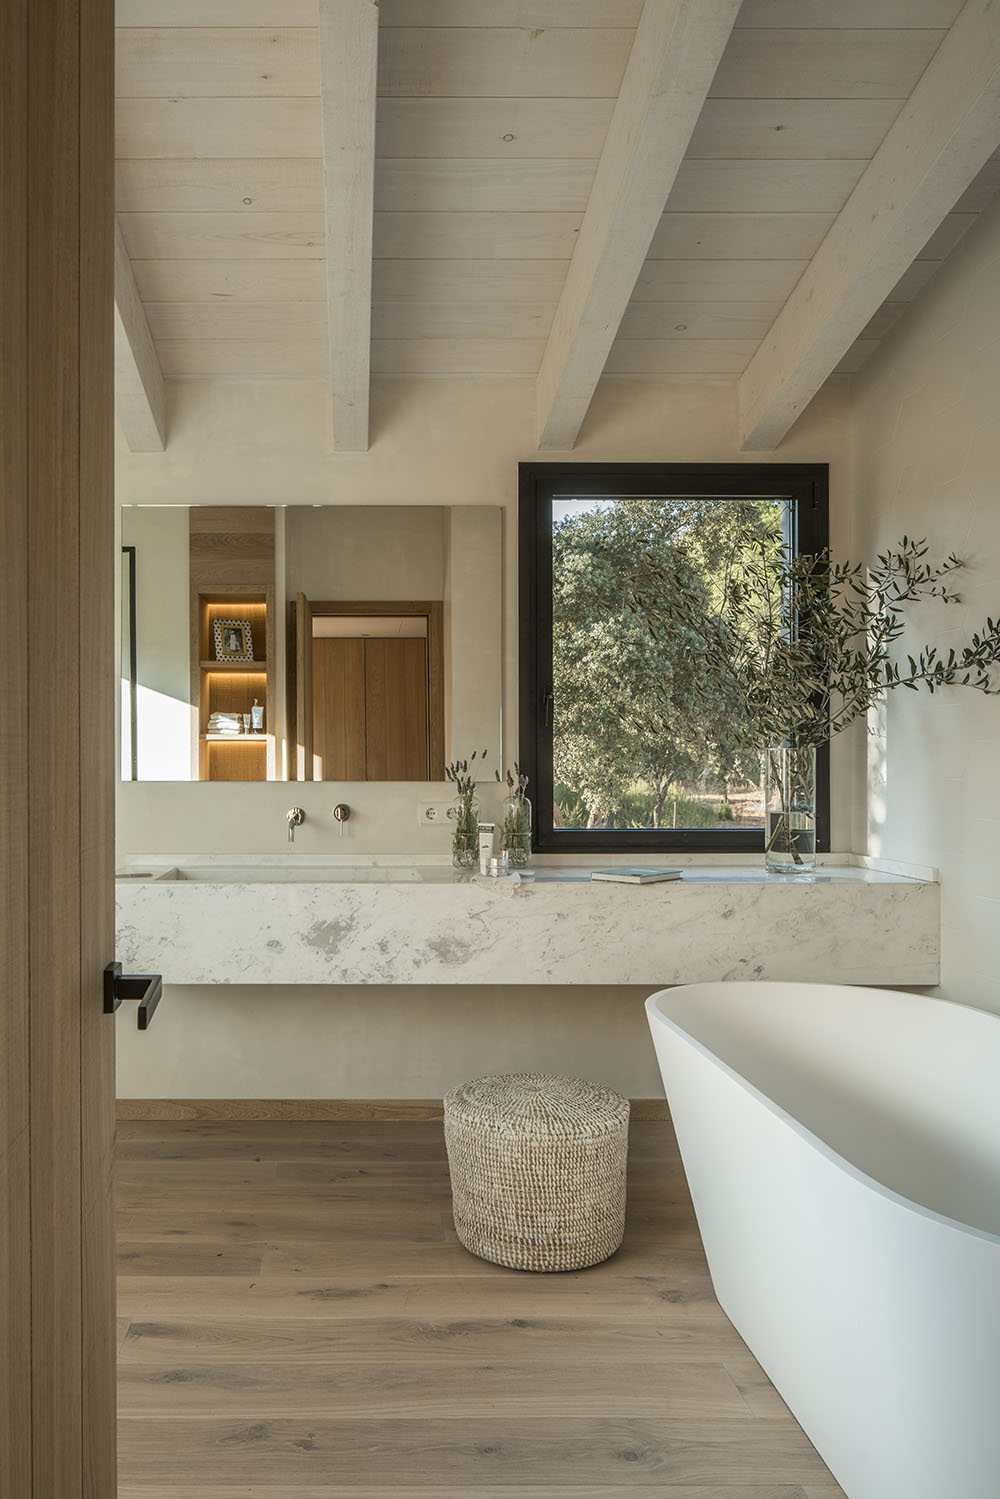 The bathtub affords a view of the olive trees outside.